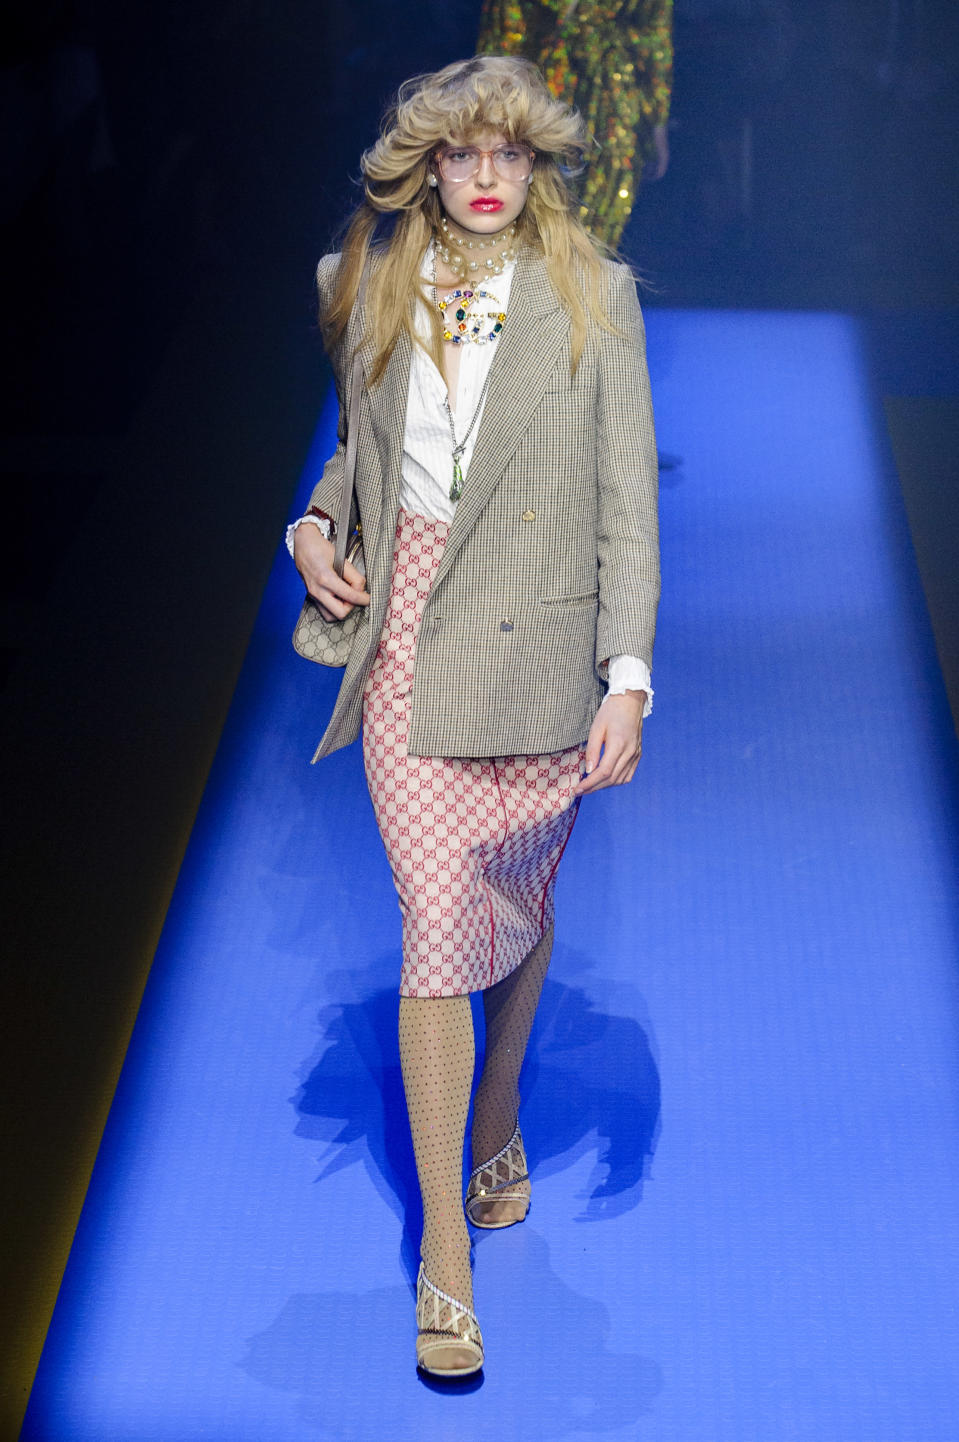 <p><i>Model wears a plaid blazer and red Gucci logo skirt, with a white shirt and layered bright jewelry. (Photo: ImaxTree) </i></p>